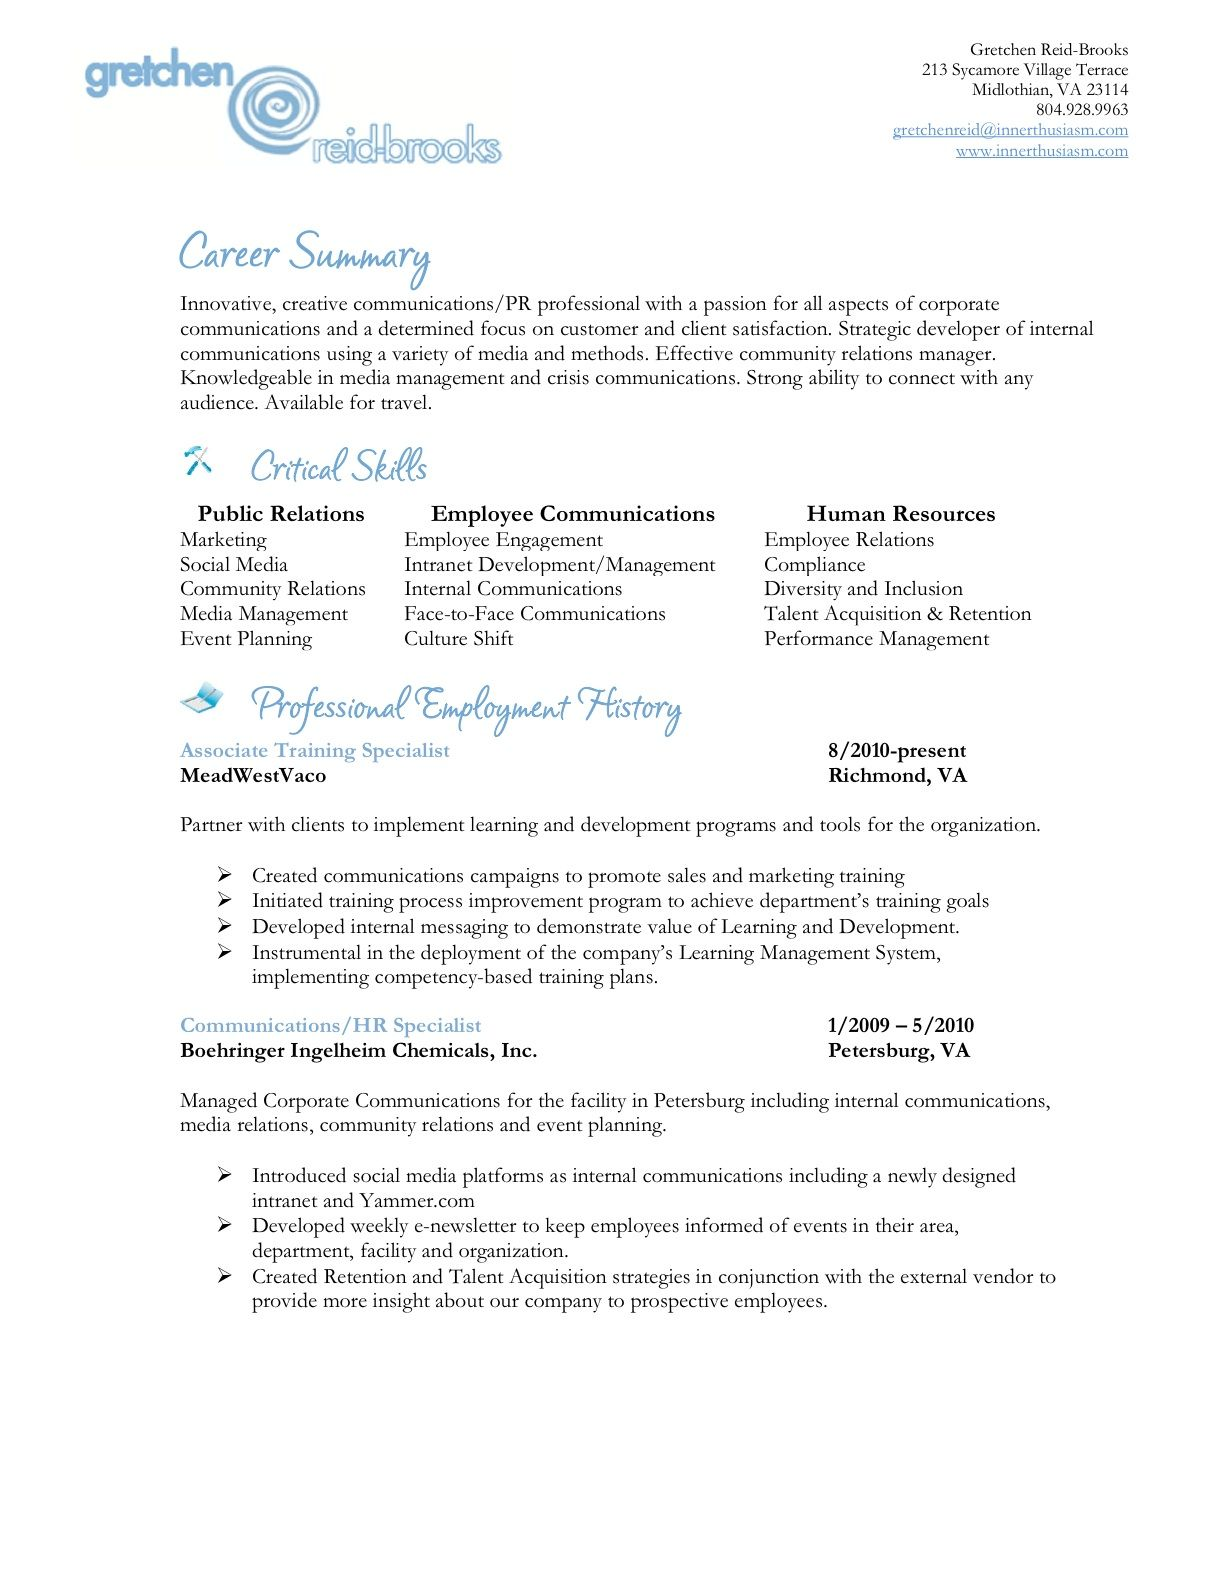 resume sample minus the font style color wording format is okay